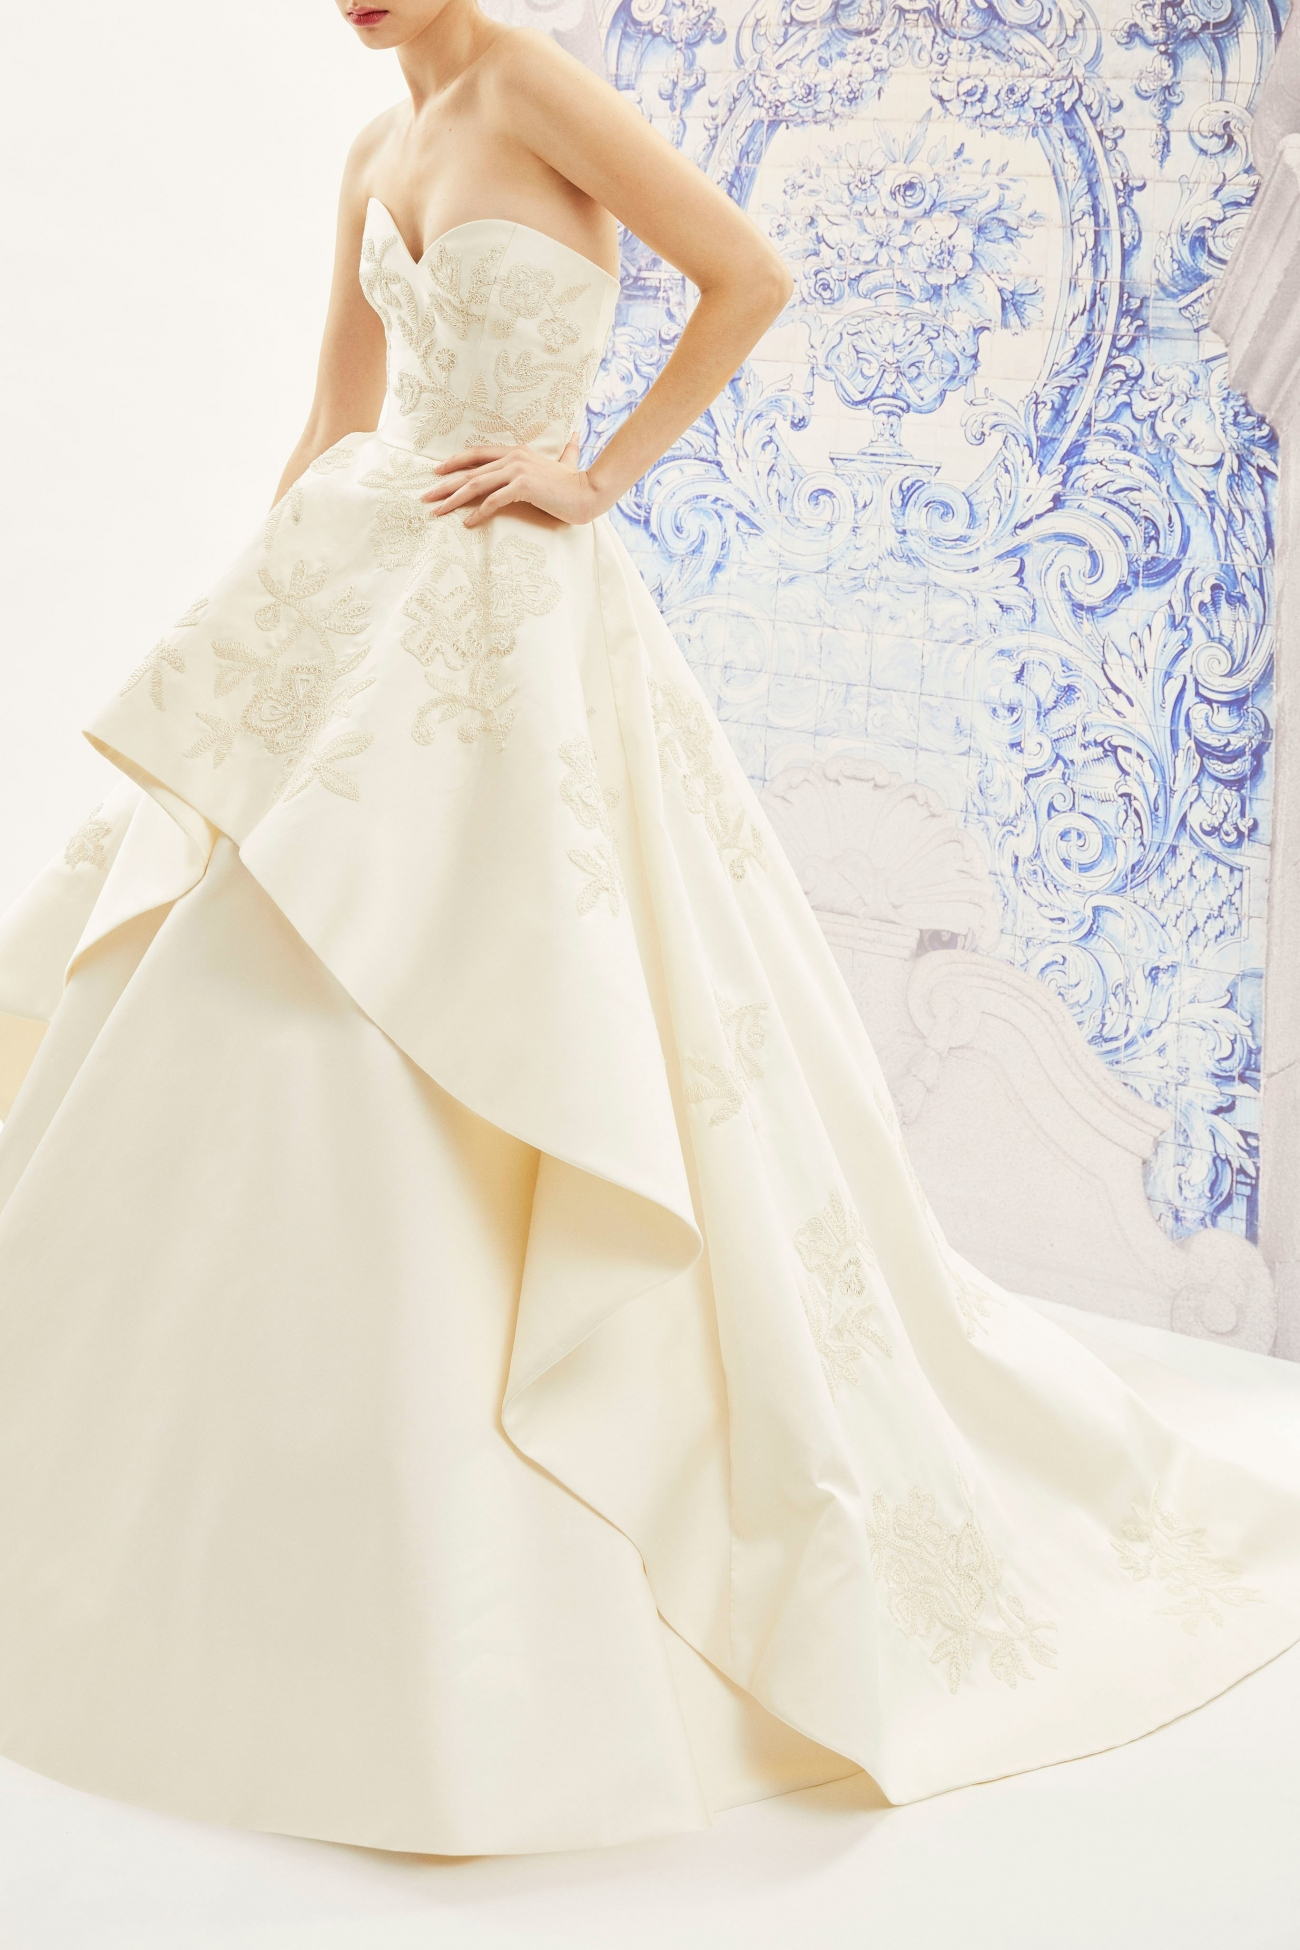 Carolina Herrera Bridal Fall 2019 Ivonne